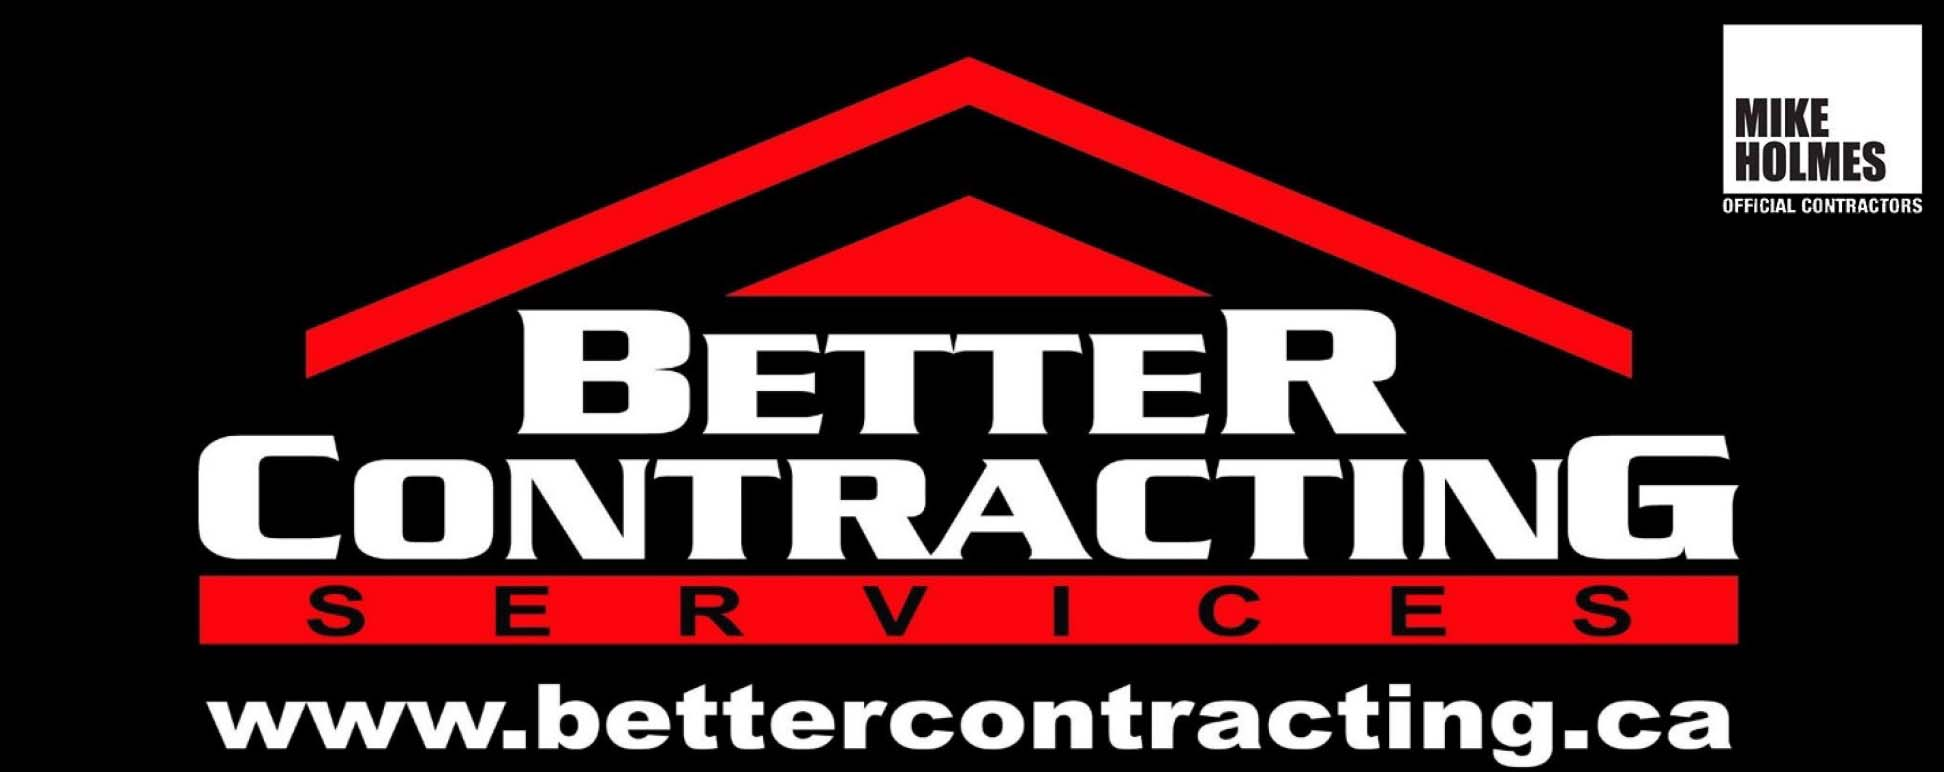 Better Contracting Logo